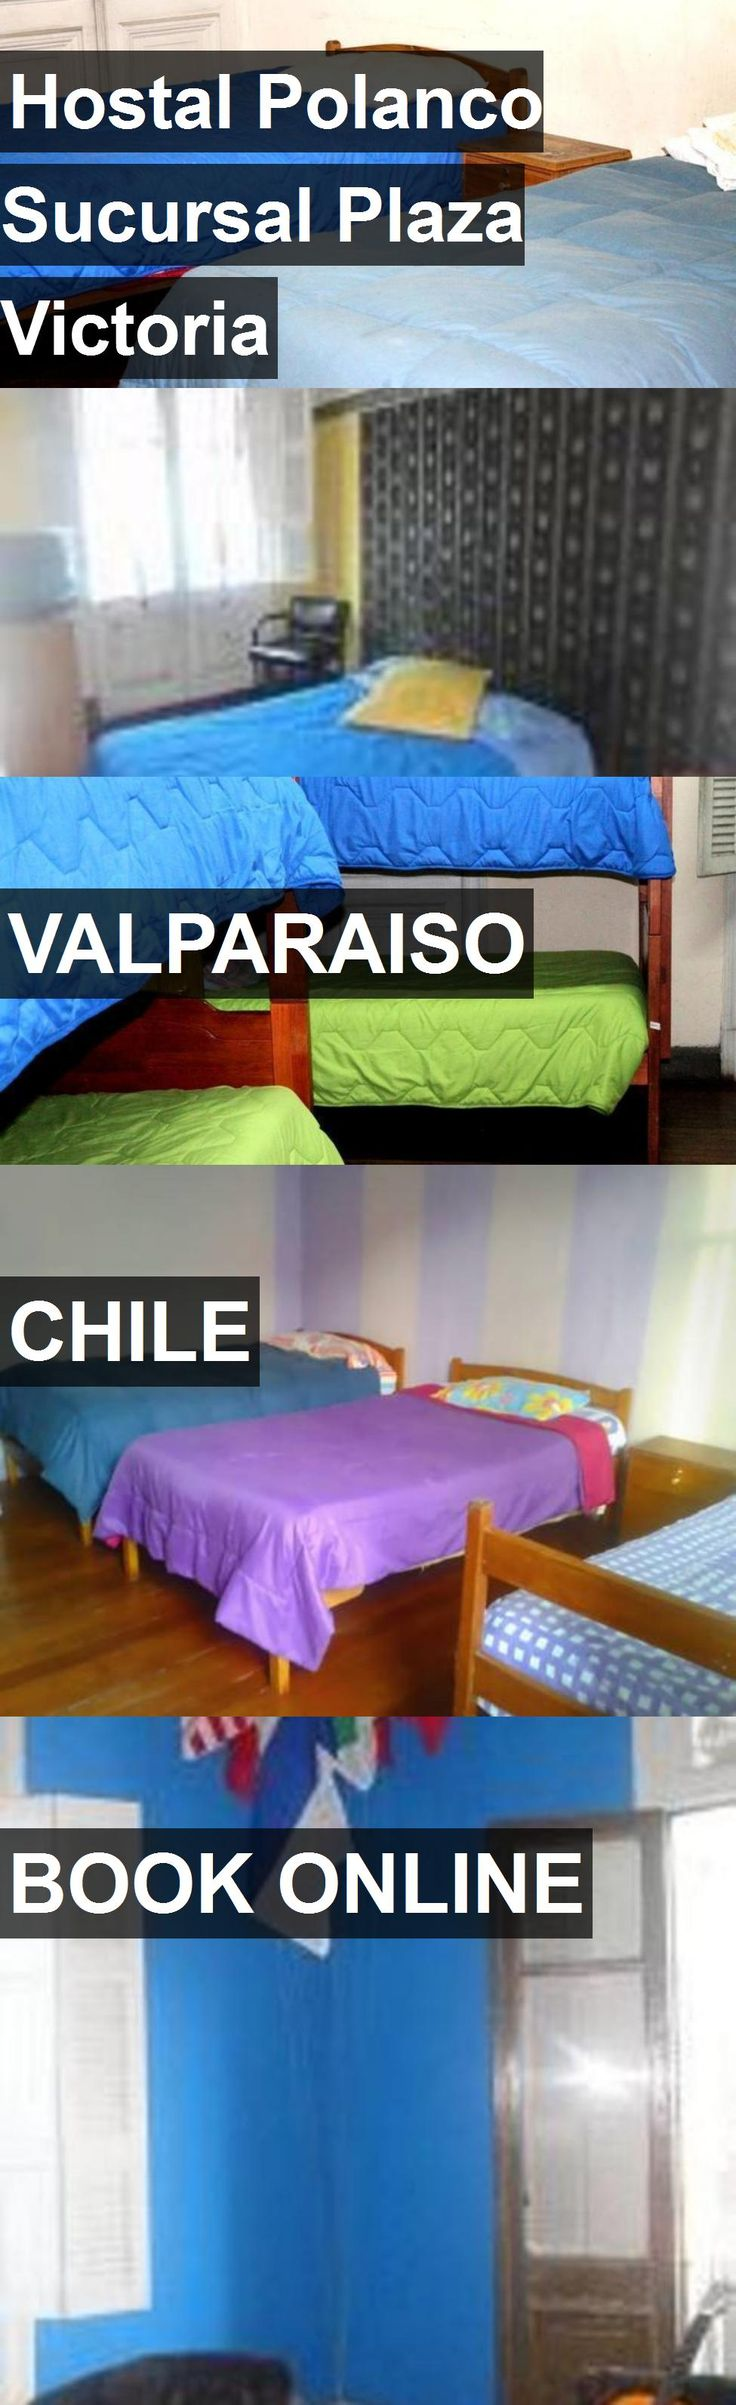 Hotel Hostal Polanco Sucursal Plaza Victoria in Valparaiso, Chile. For more information, photos, reviews and best prices please follow the link. #Chile #Valparaiso #HostalPolancoSucursalPlazaVictoria #hotel #travel #vacation